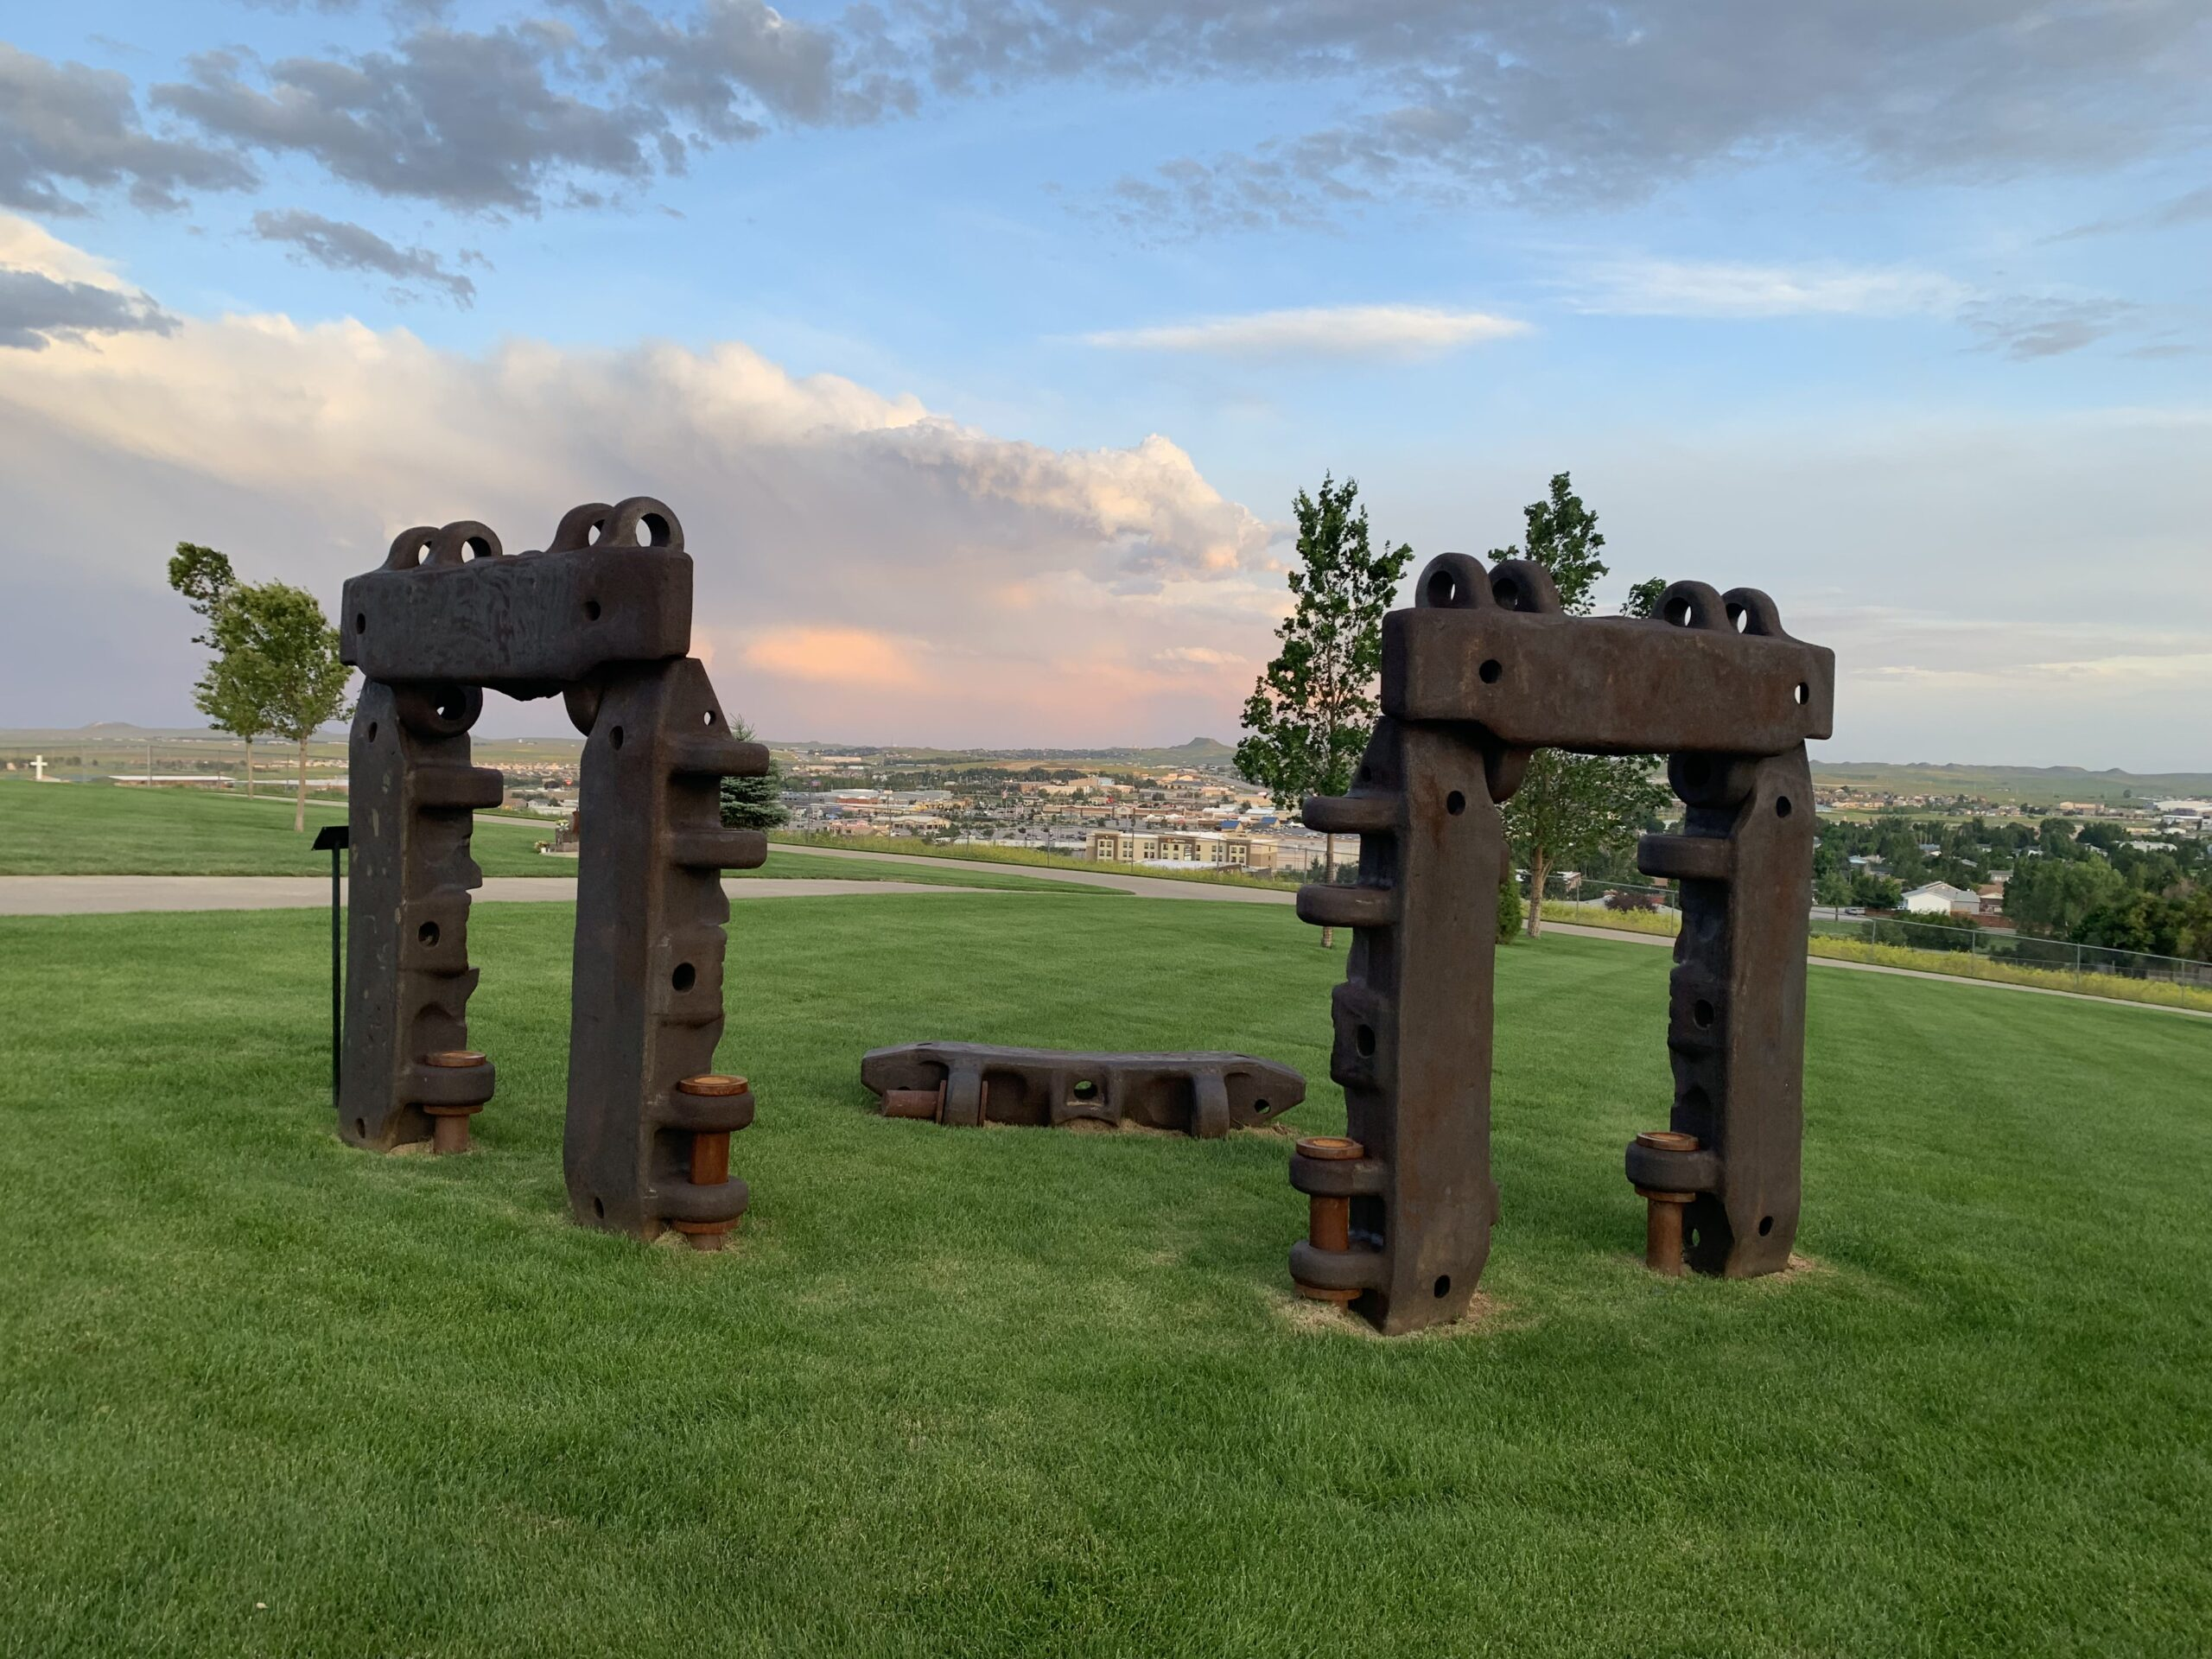 Shovel Shoe Henge, a sculpture located in a cemetery overlooking Gillette, meant to pay tribute to the coal industry.